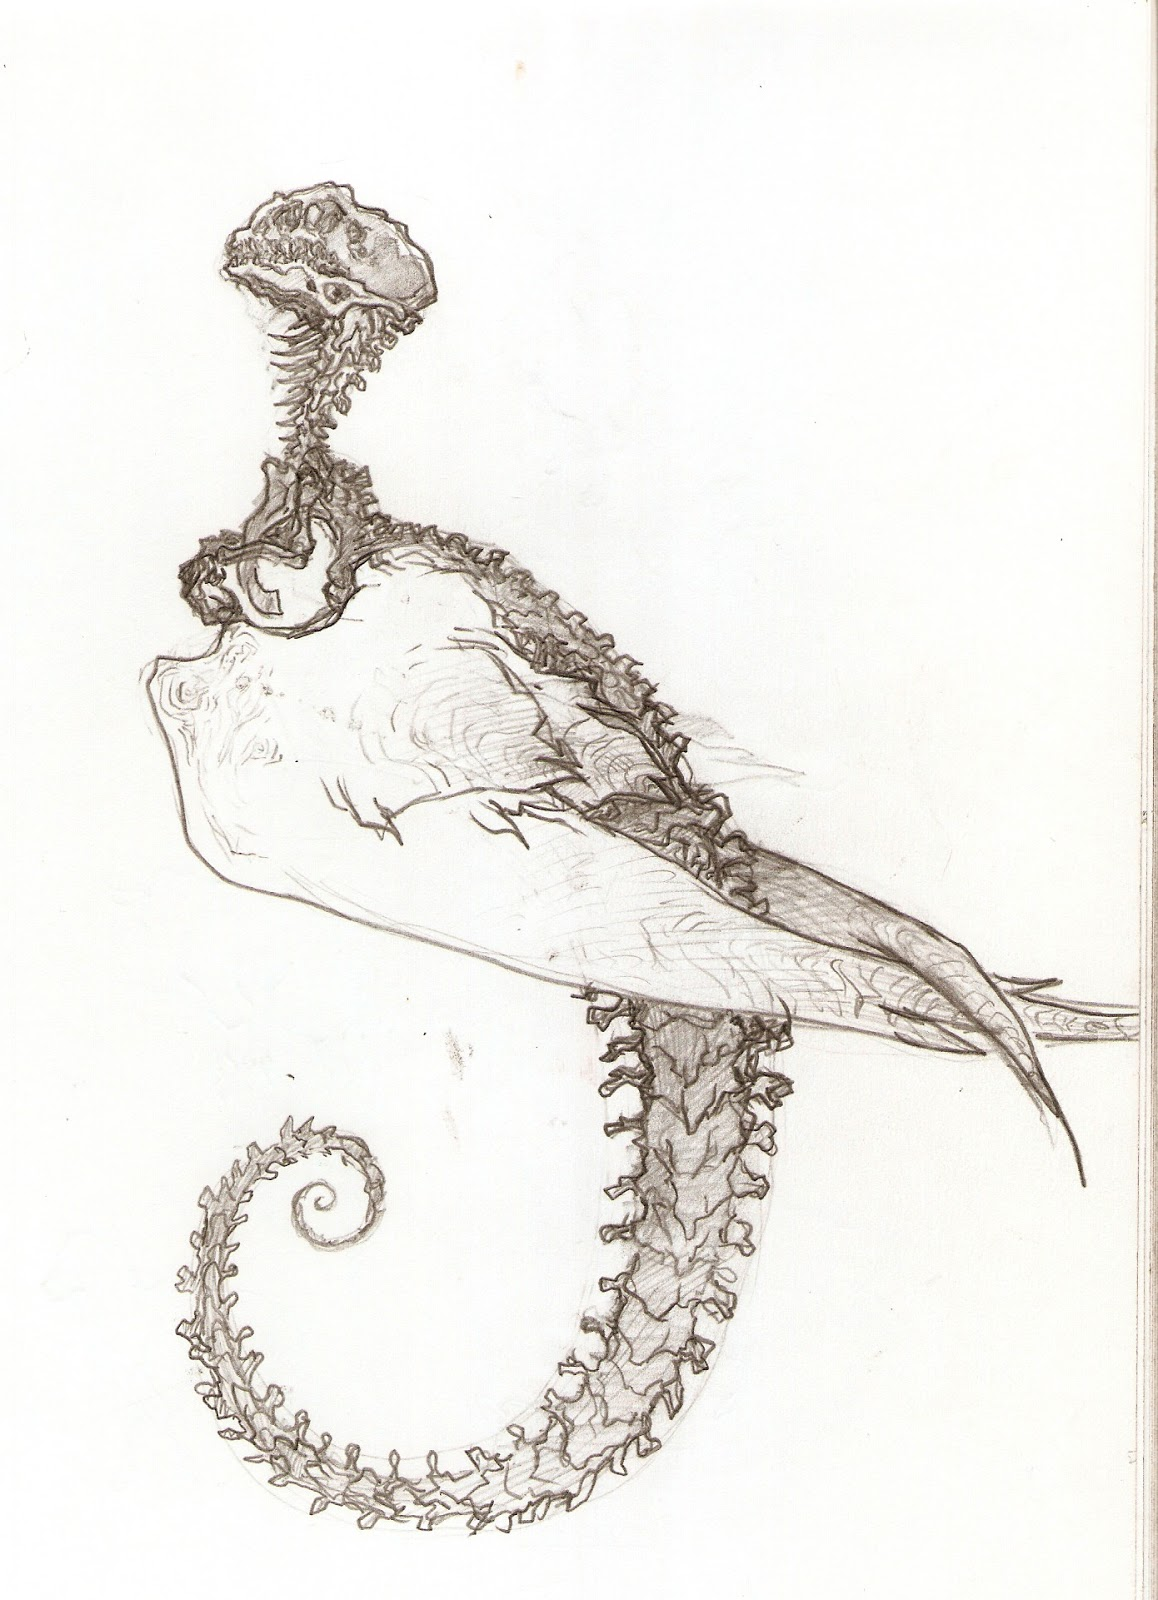 Ostrich Skeleton Diagram L4 Nerve Pain Wing Claws Related Keywords